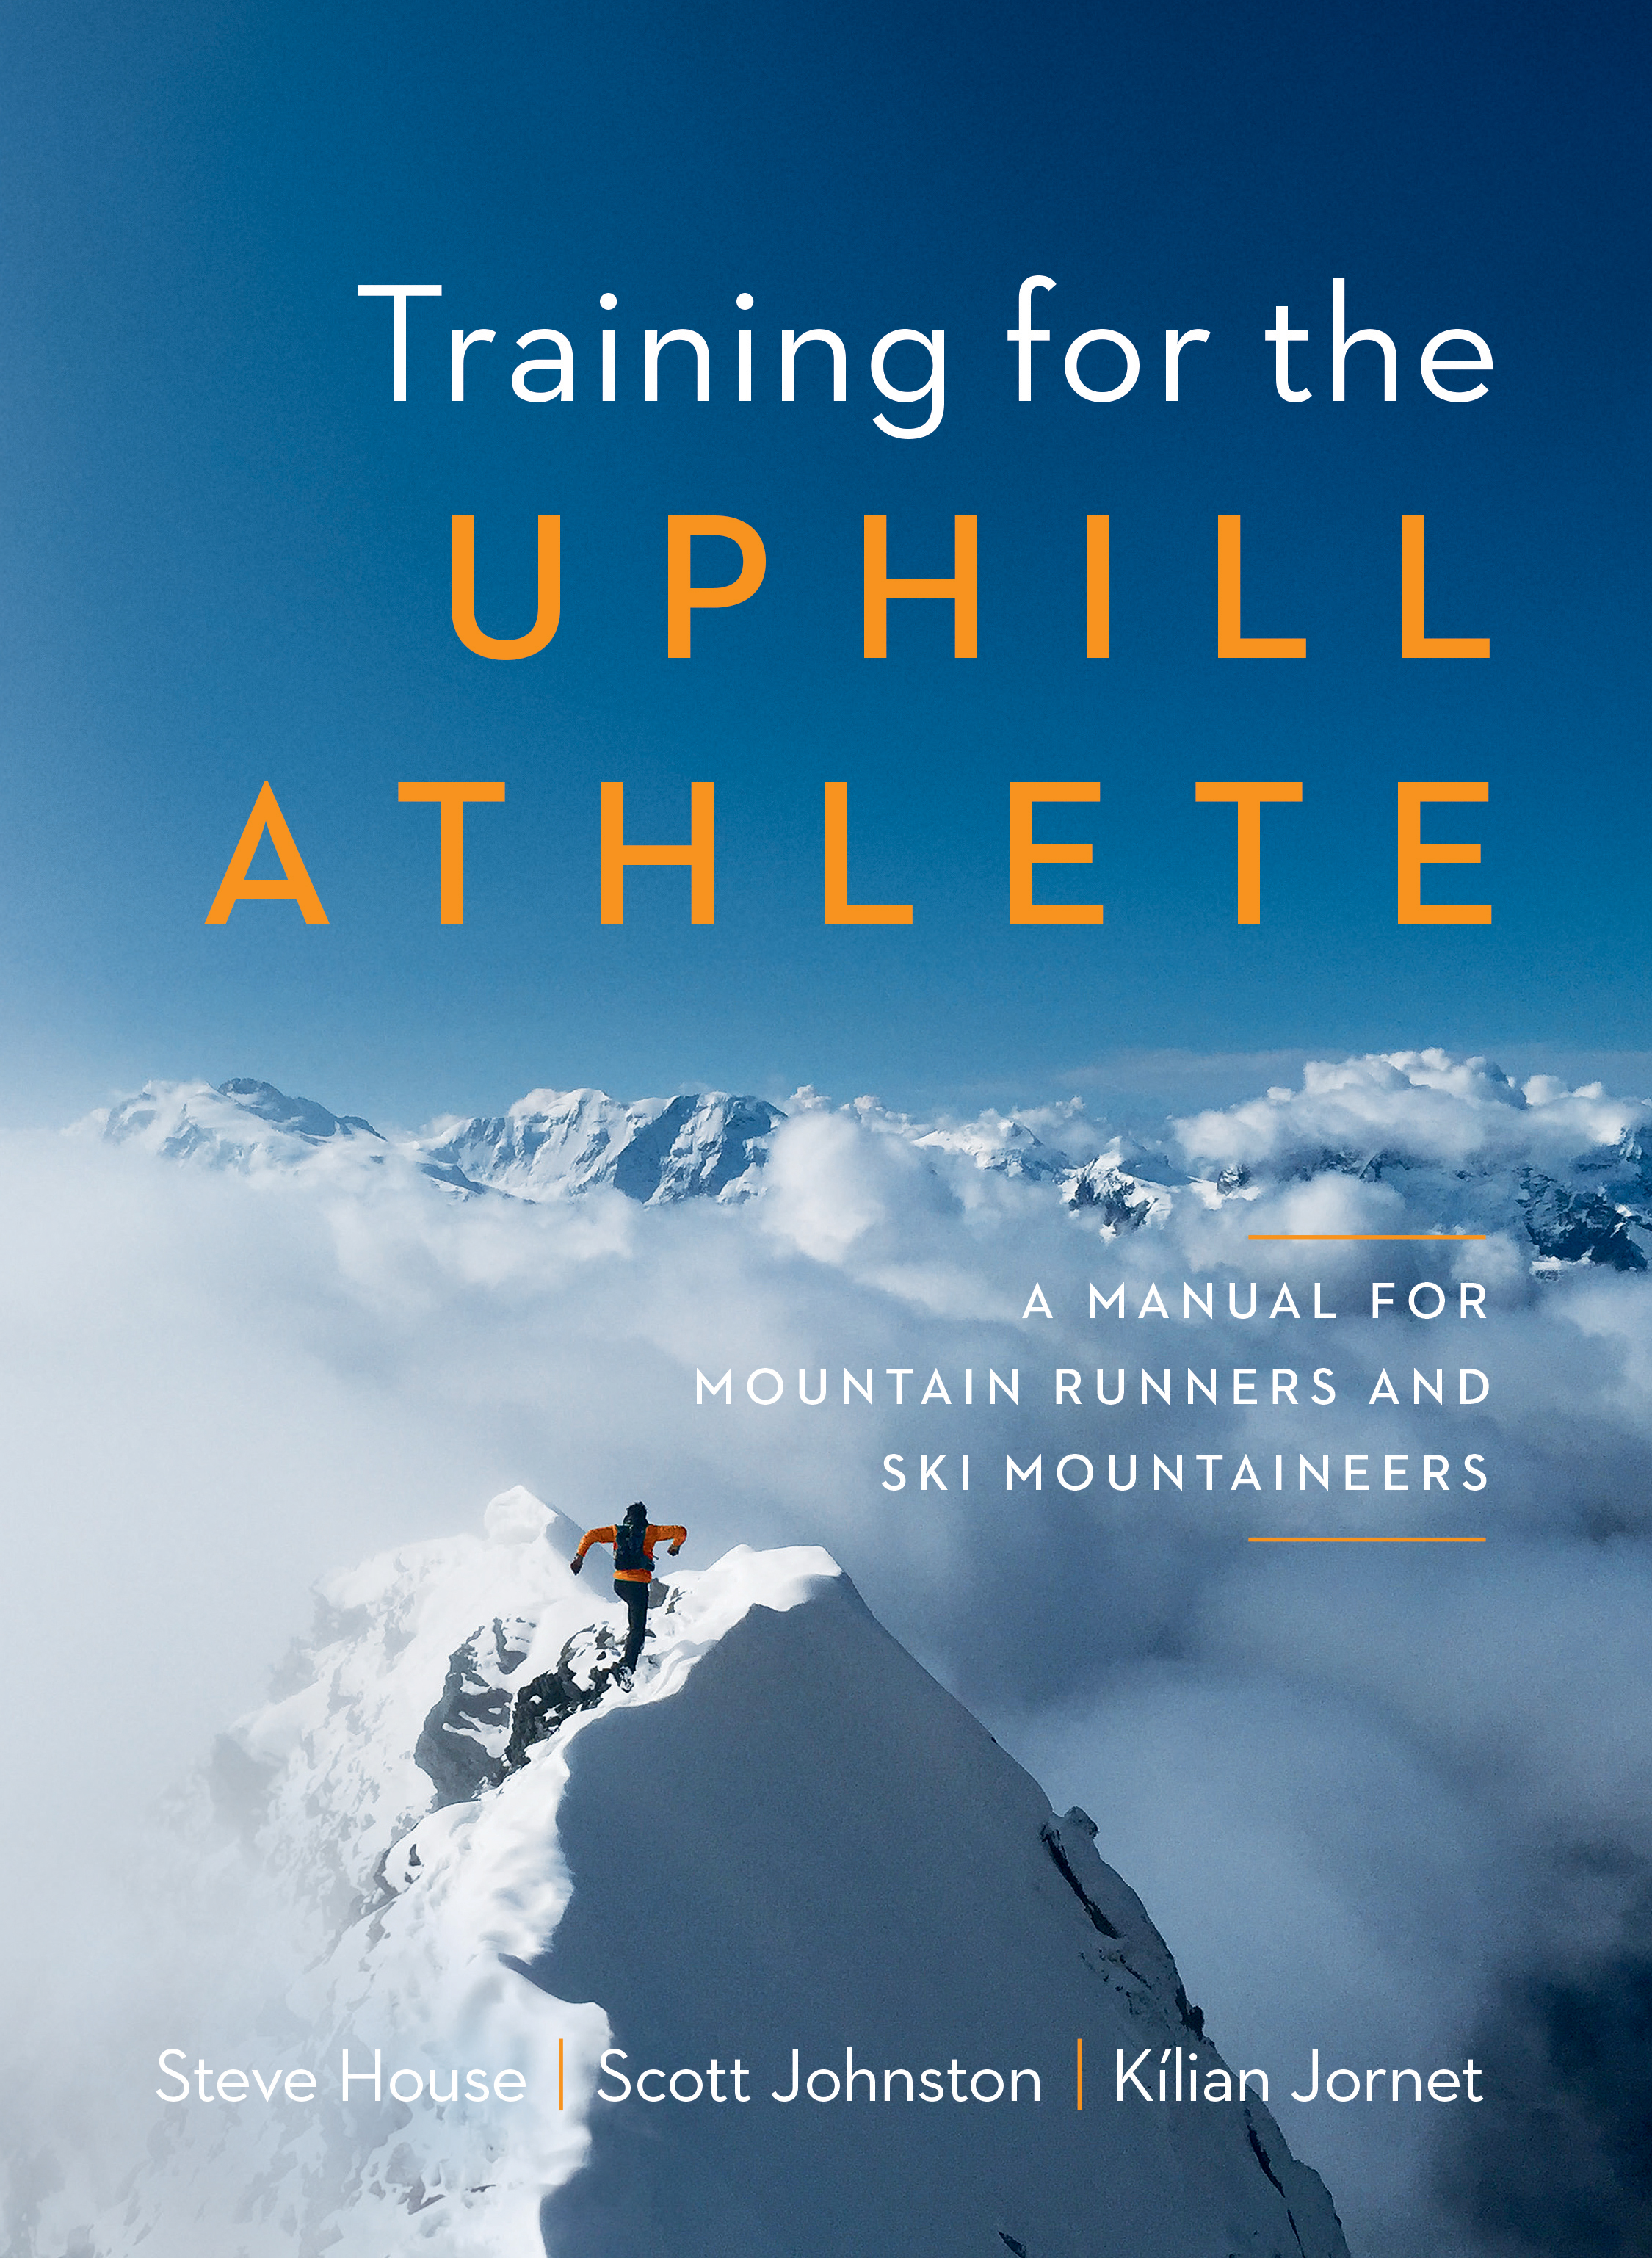 Jornet, House, Johnston: Big Names Pen Book for Uphill Athletes